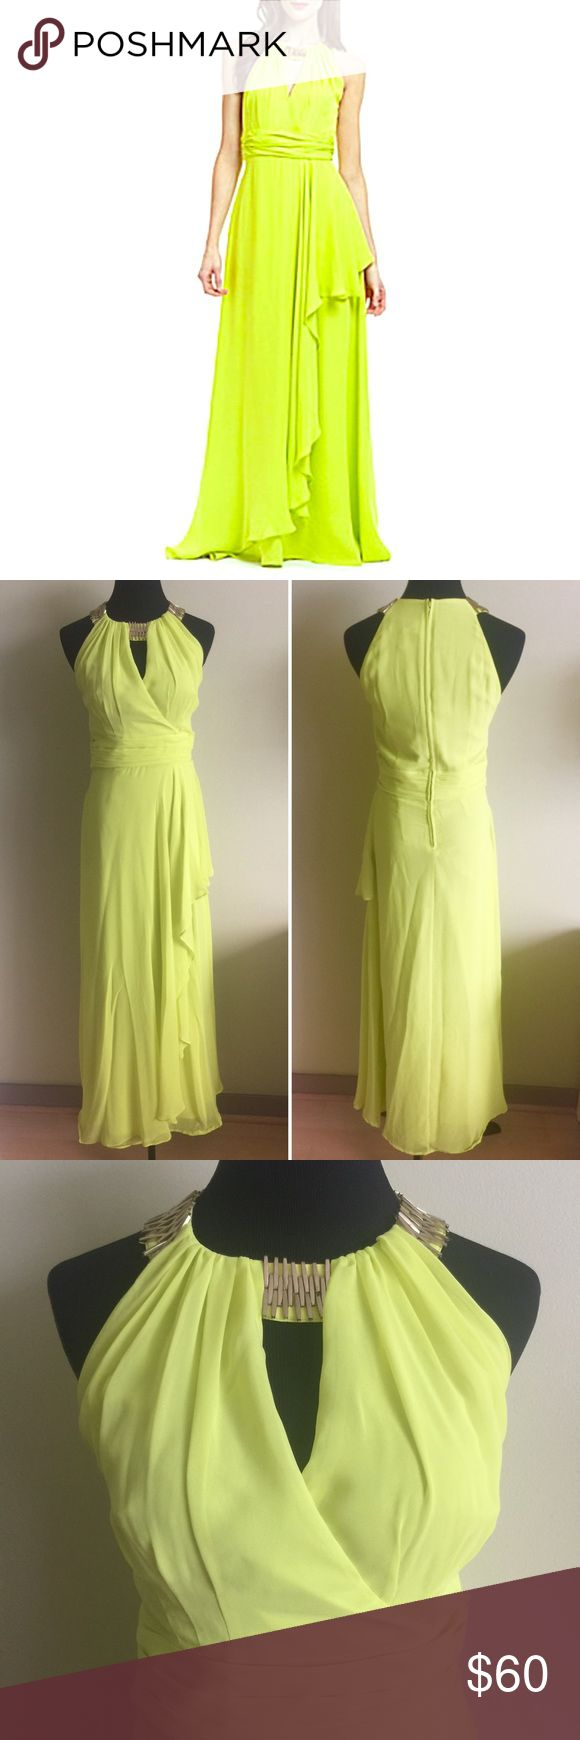 Spotted while shopping on Poshmark: 🐠 BADGLEY MISCHKA chiffon halter gown in lime 4! #poshmark #fashion #shopping #style #Badgley Mischka #Dresses & Skirts